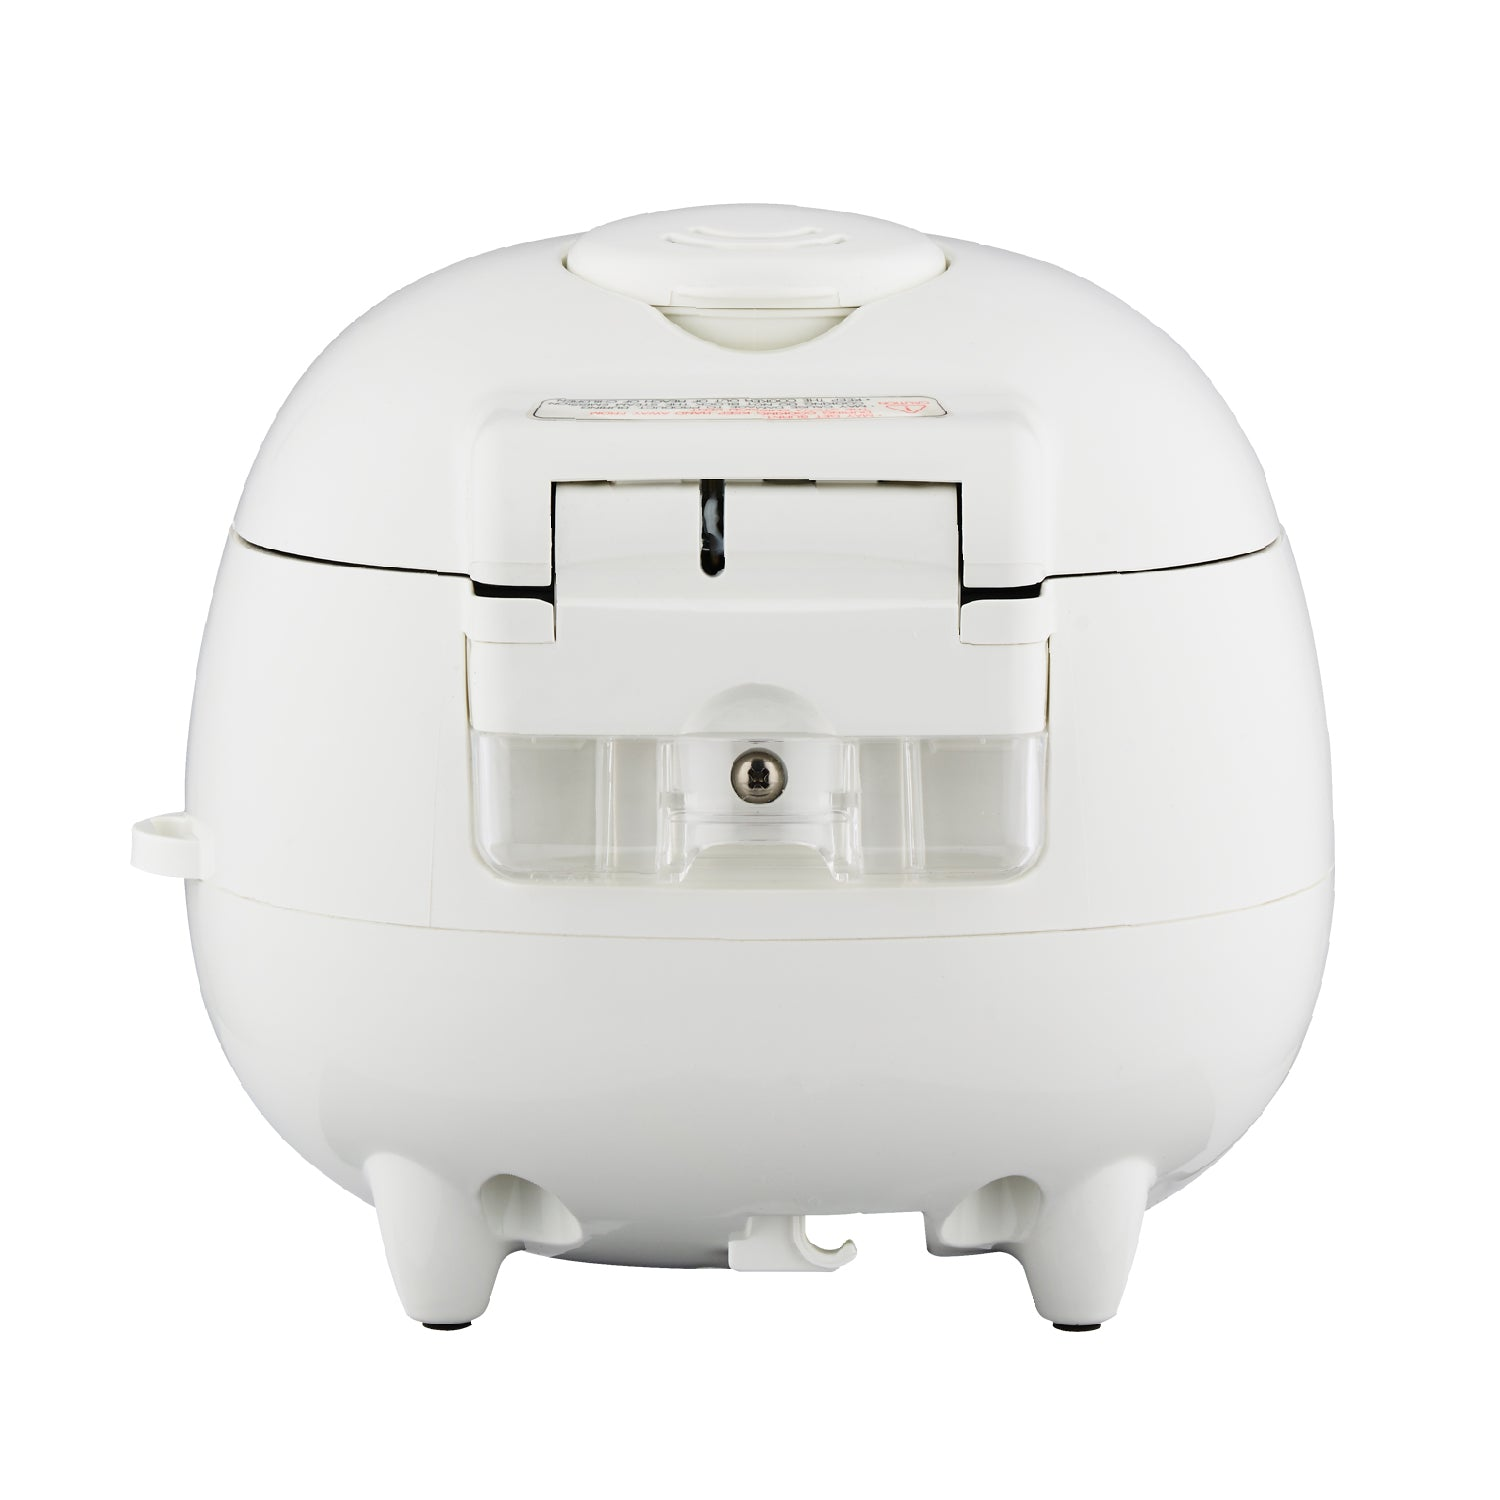 CUCKOO RICE COOKER CR-0351F